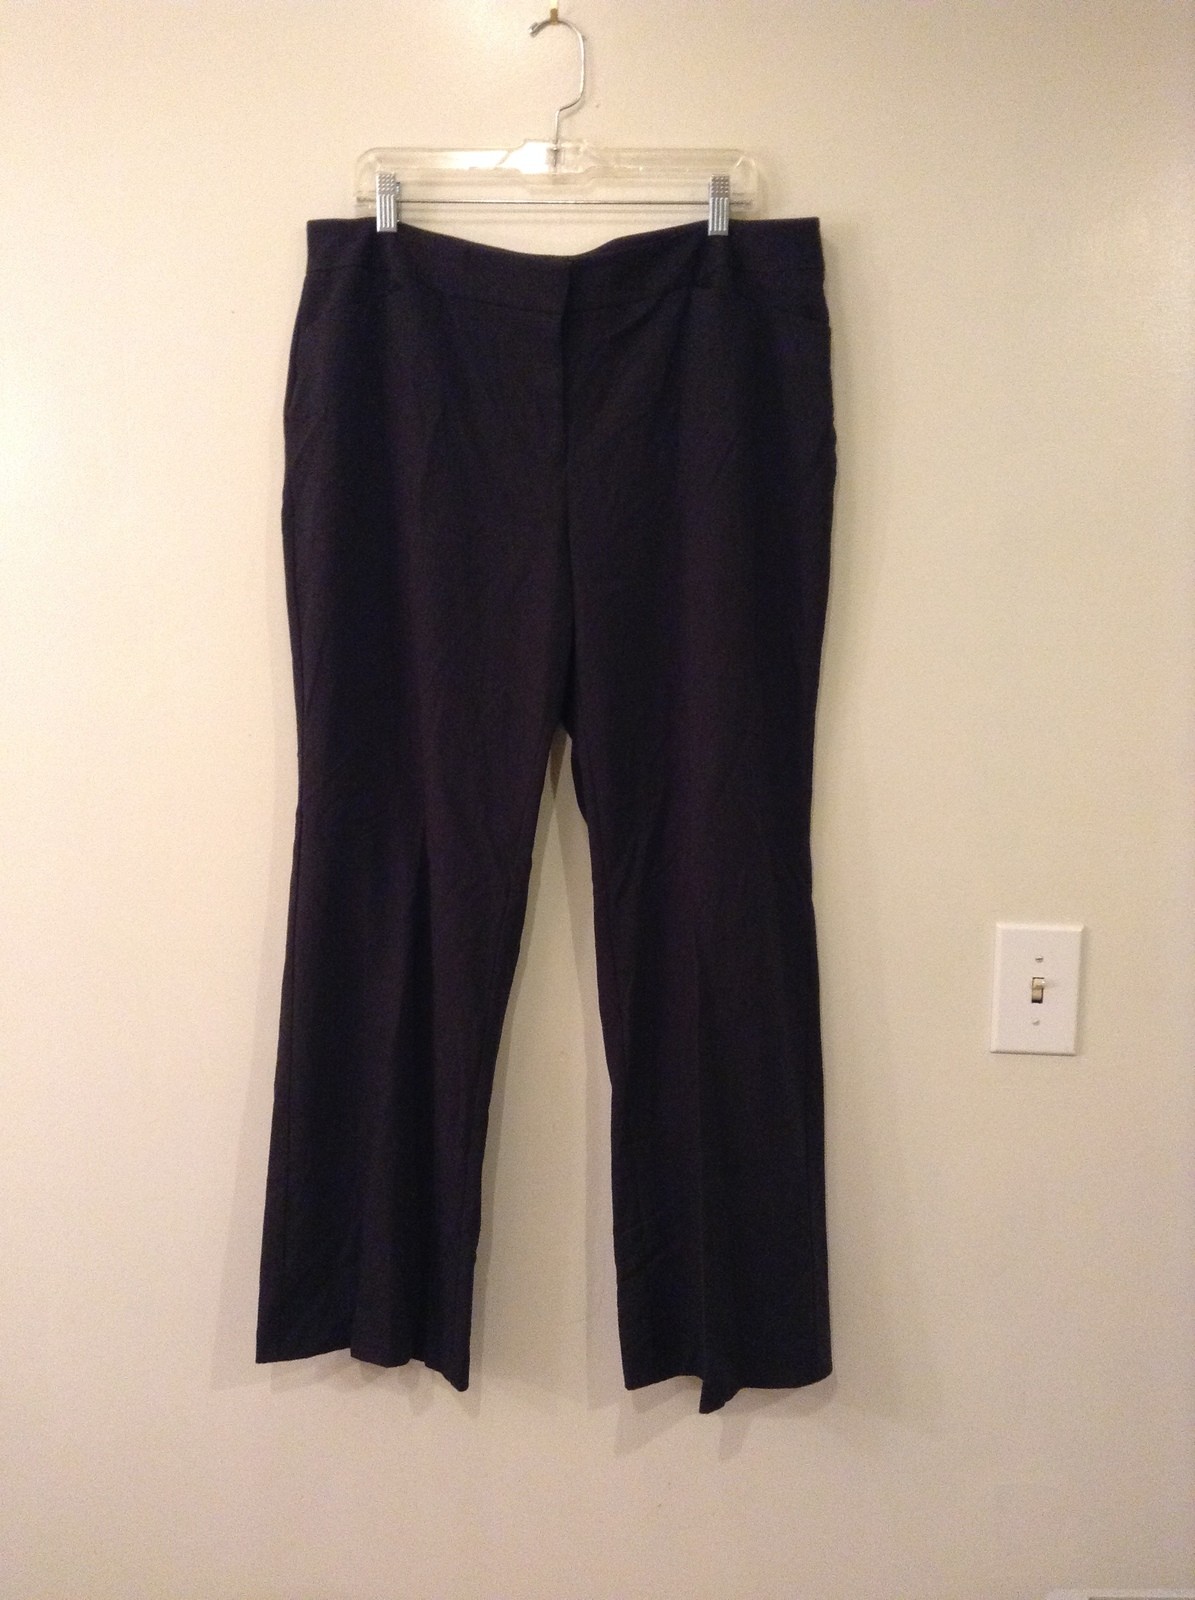 Alfani Woman Dark Gray Stretchy Dress Pants, size 16W, unlined